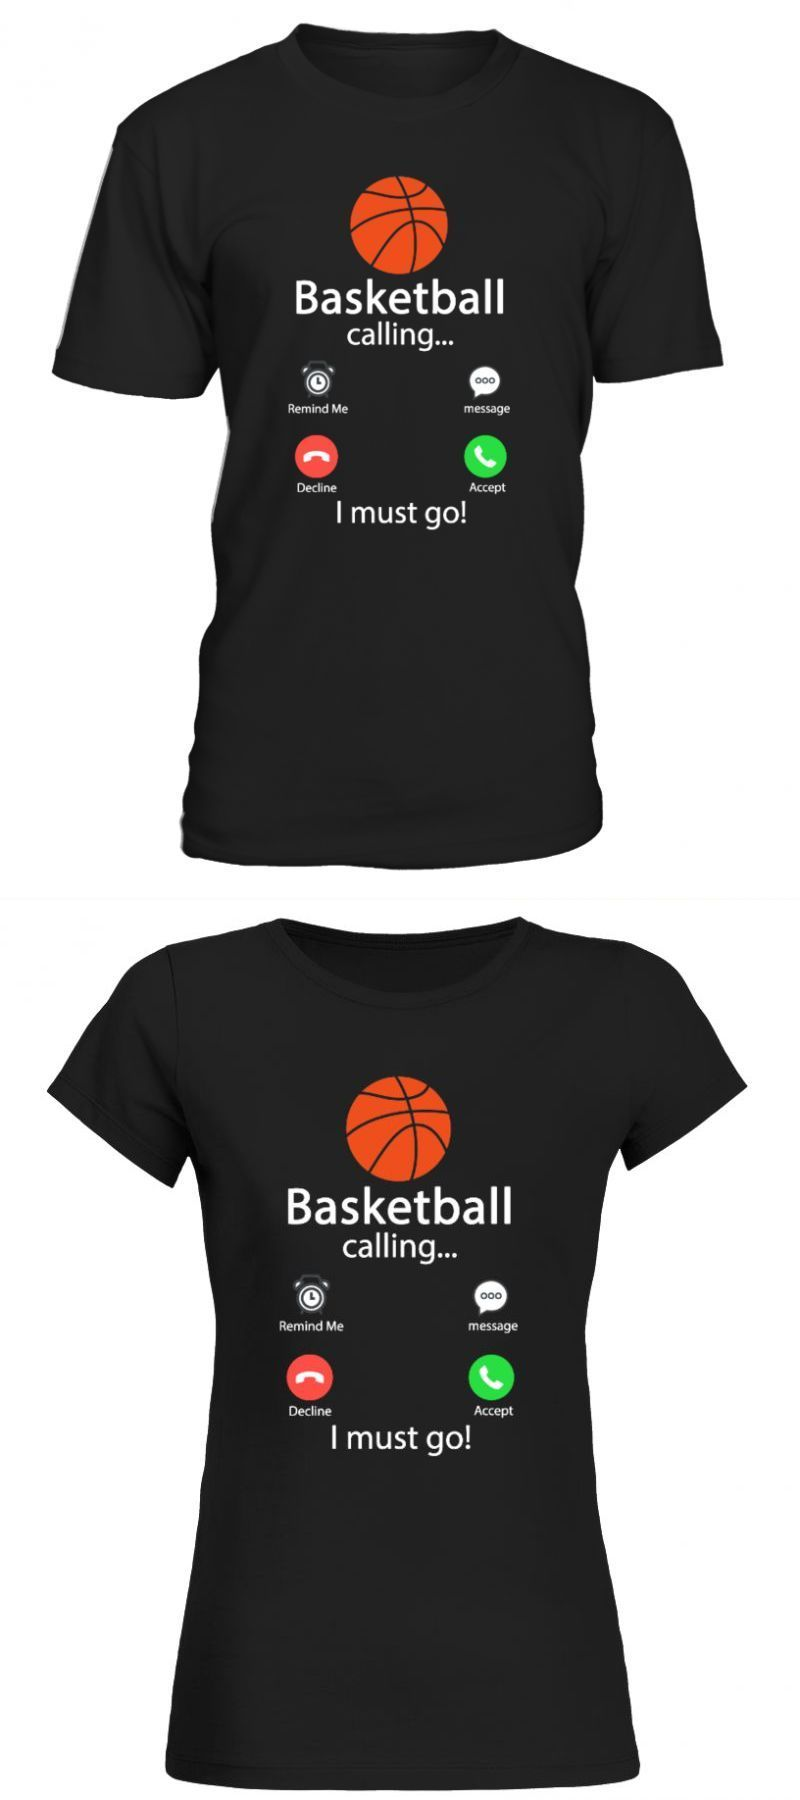 T Shirt Basketball Design Ideas Basketball Is Calling And I Must Go Basketball Aunt T Shirt Basketball T Shirt Designs Aunt T Shirts Shirt Designs